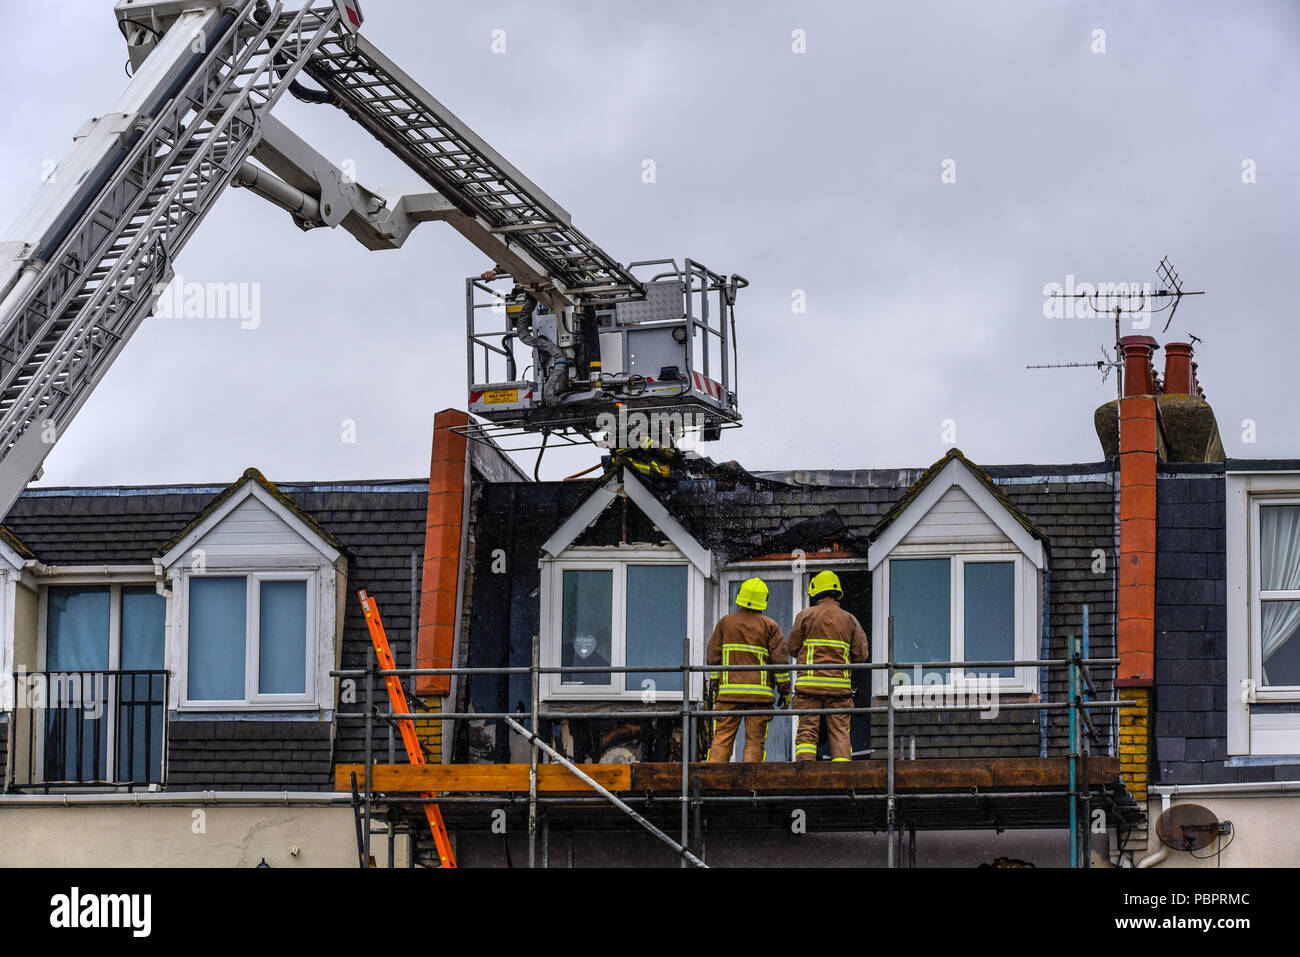 Eastern Esplanade, Southend on Sea, Essex, UK. Five fire engines, ambulances and police attended a flat fire in Southend. The seafront road was closed during the incident. The cause of the fire was reported to be accidental, due to works being carried out - Stock Image